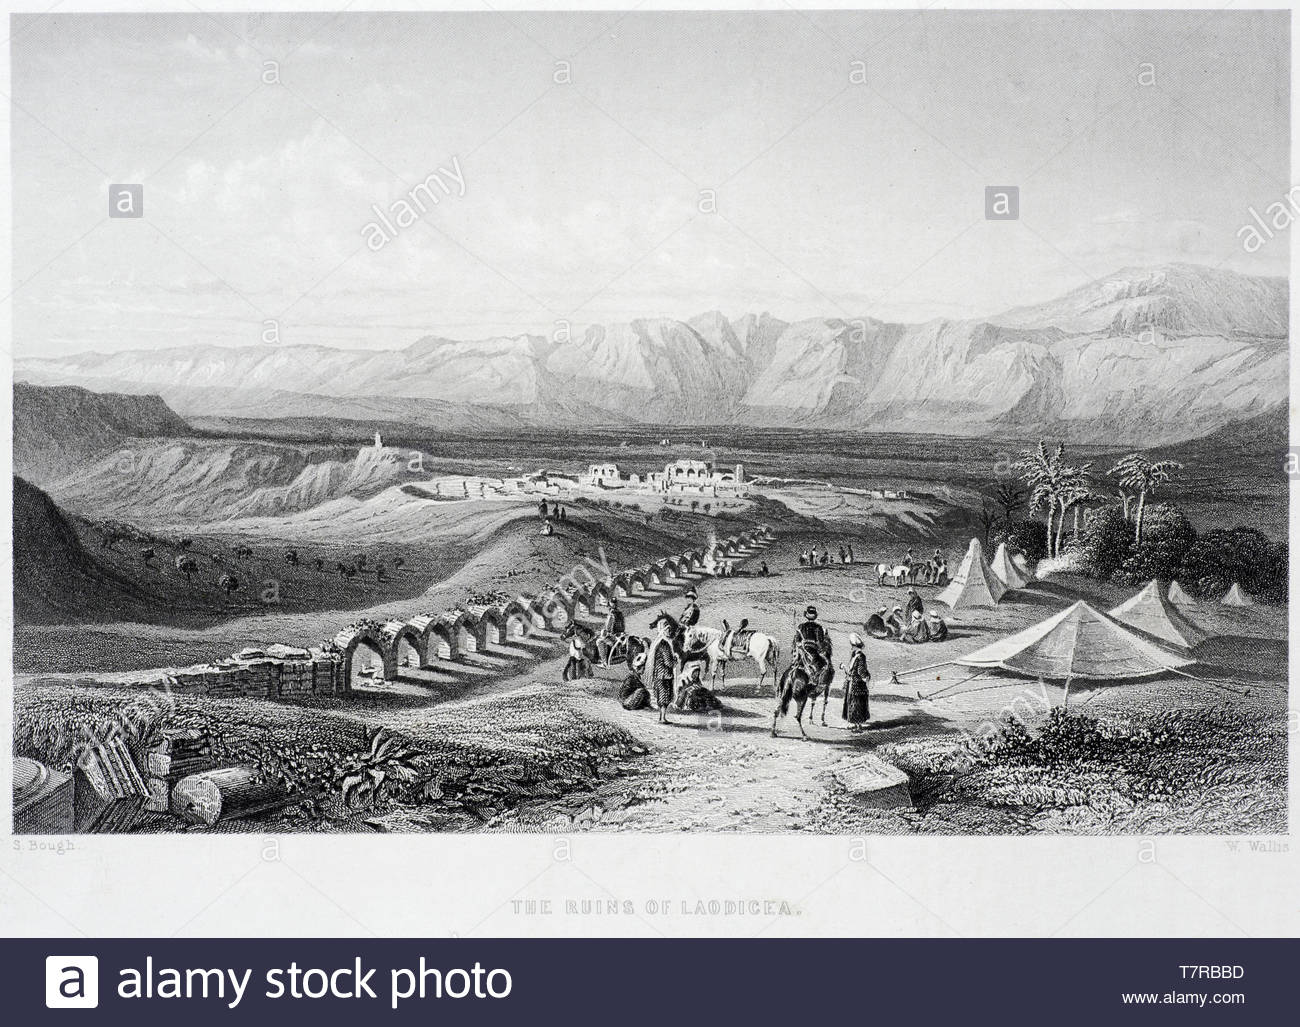 The Ruins of Laodicea in ancient Greece, now near the modern city of Denizli Turkey, antique engraving from 1800s - Stock Image